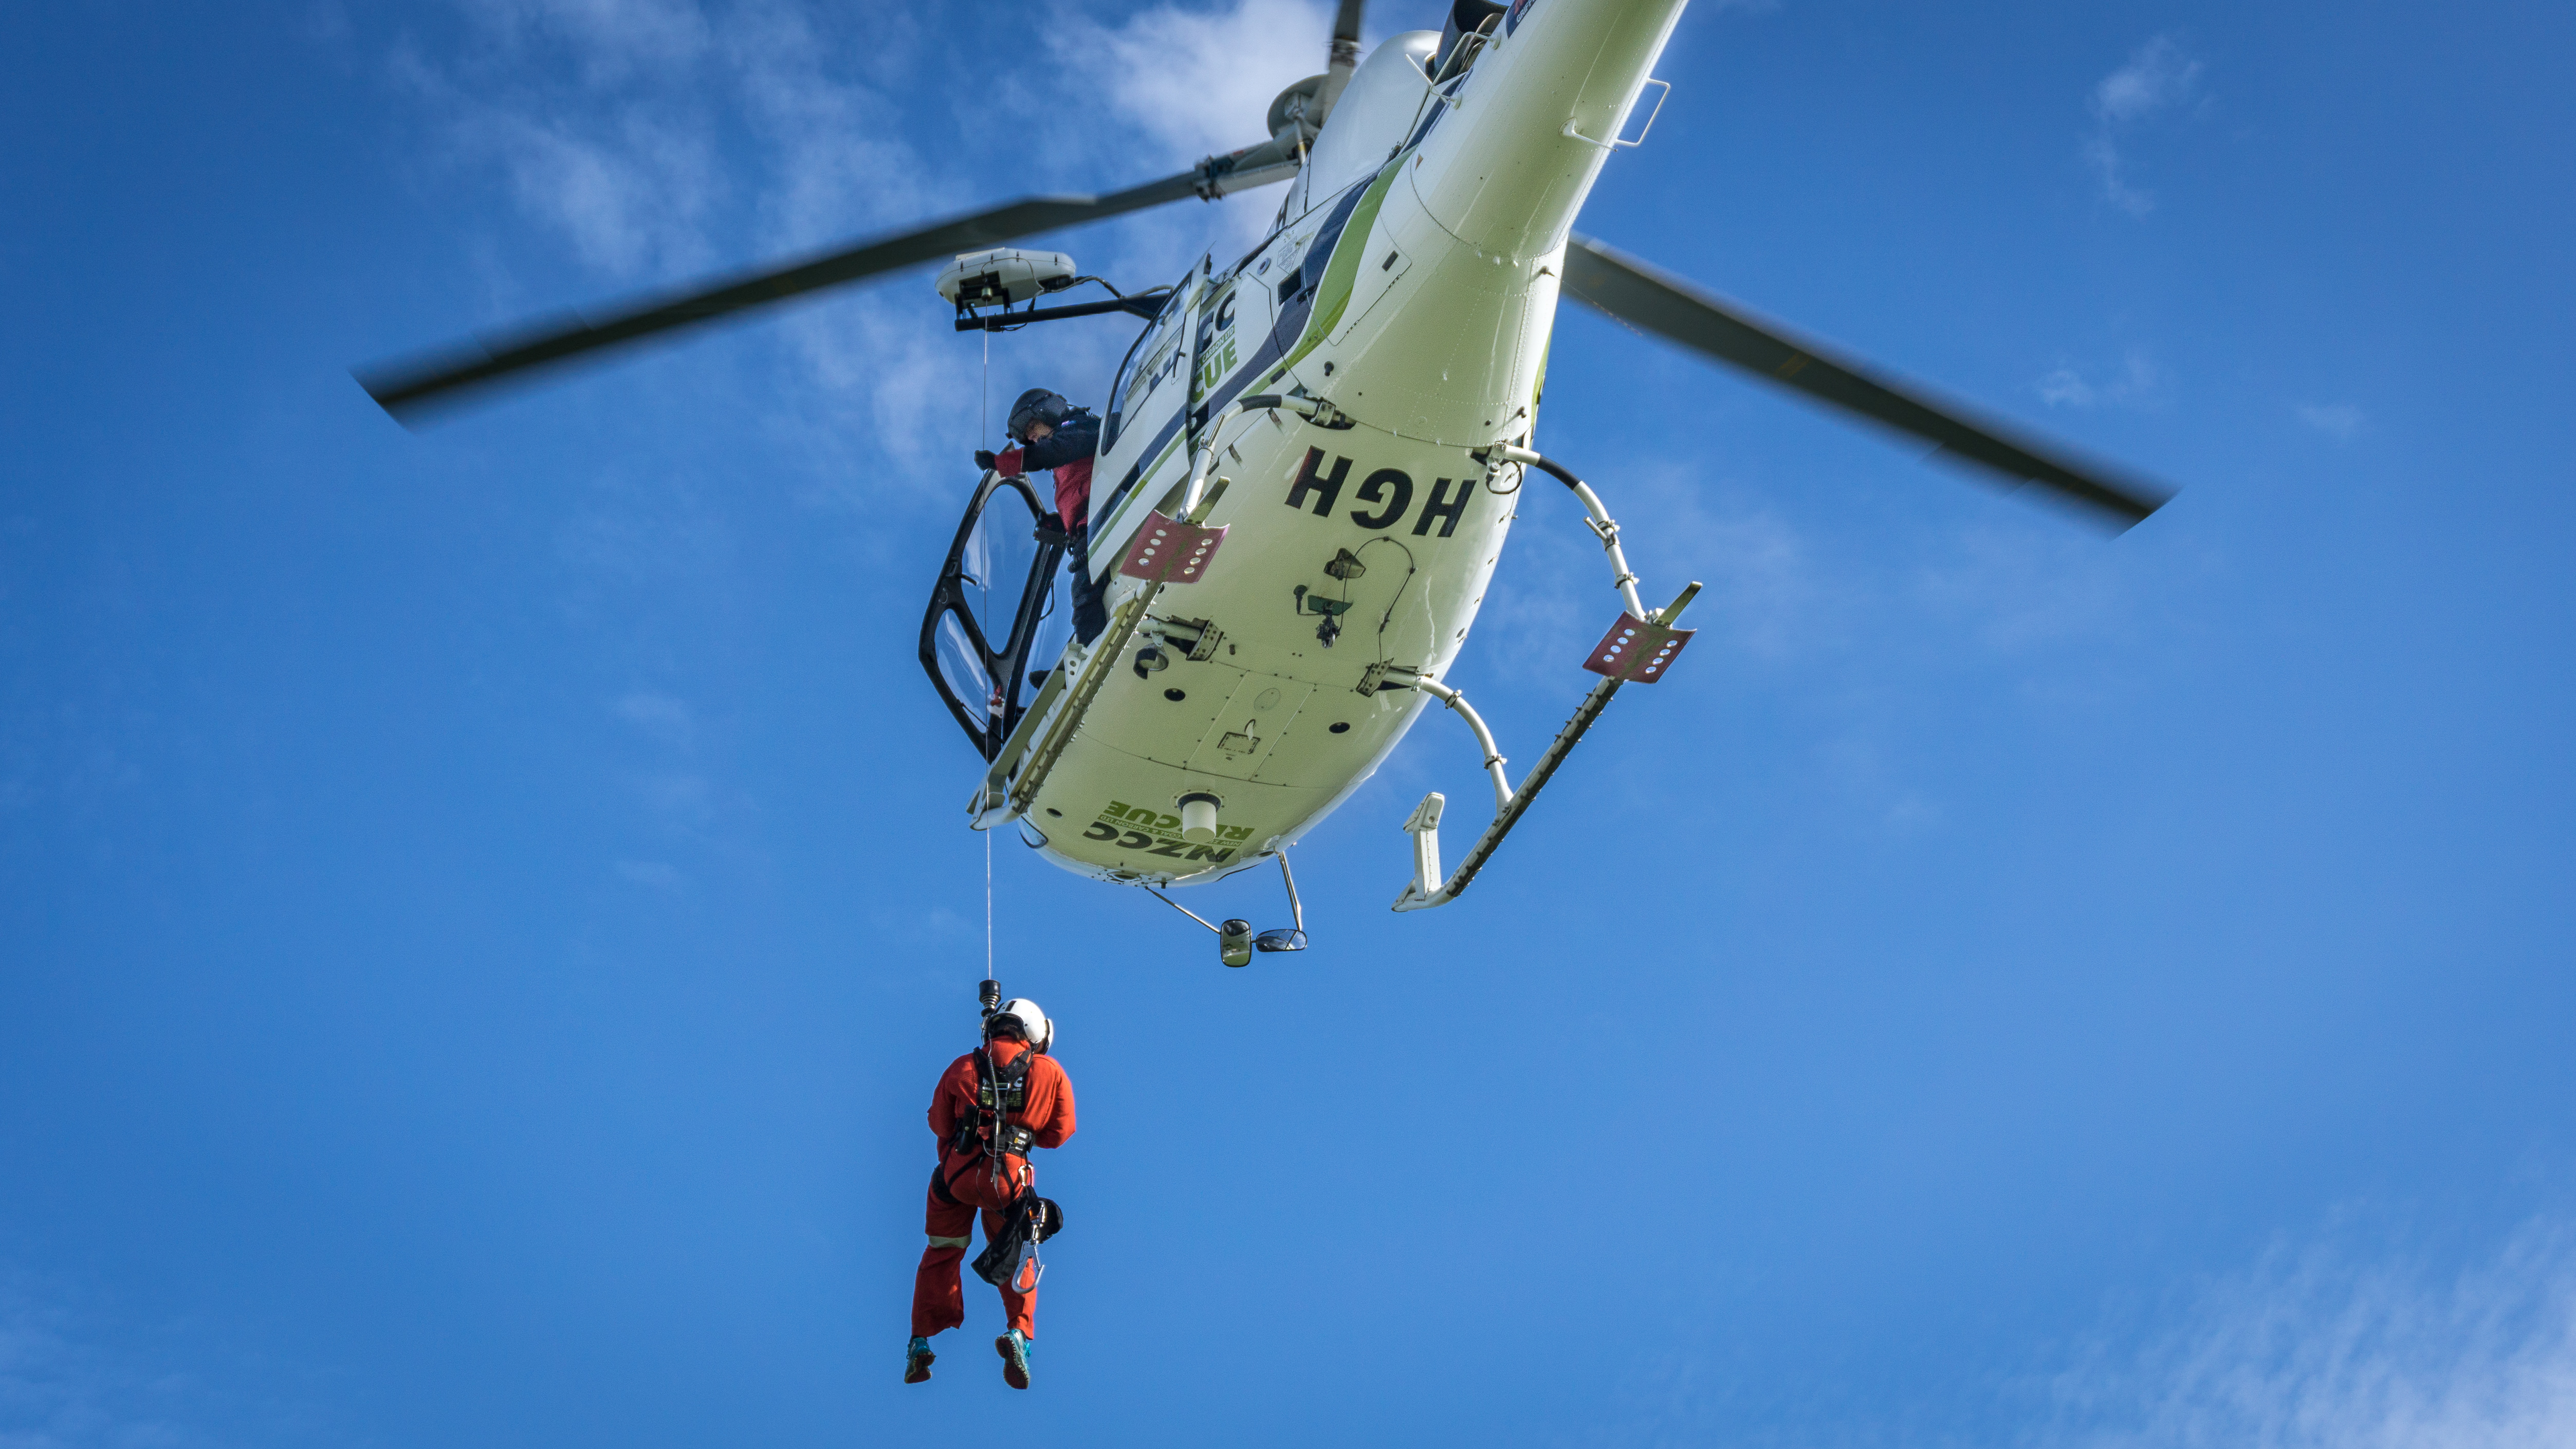 Emma Carrod  (Greymouth Police) about to be winched aboard HGH by Rob Stokes (winch op.) and Angus Taylor (pilot).  Greymouth, 26 MAy 2015